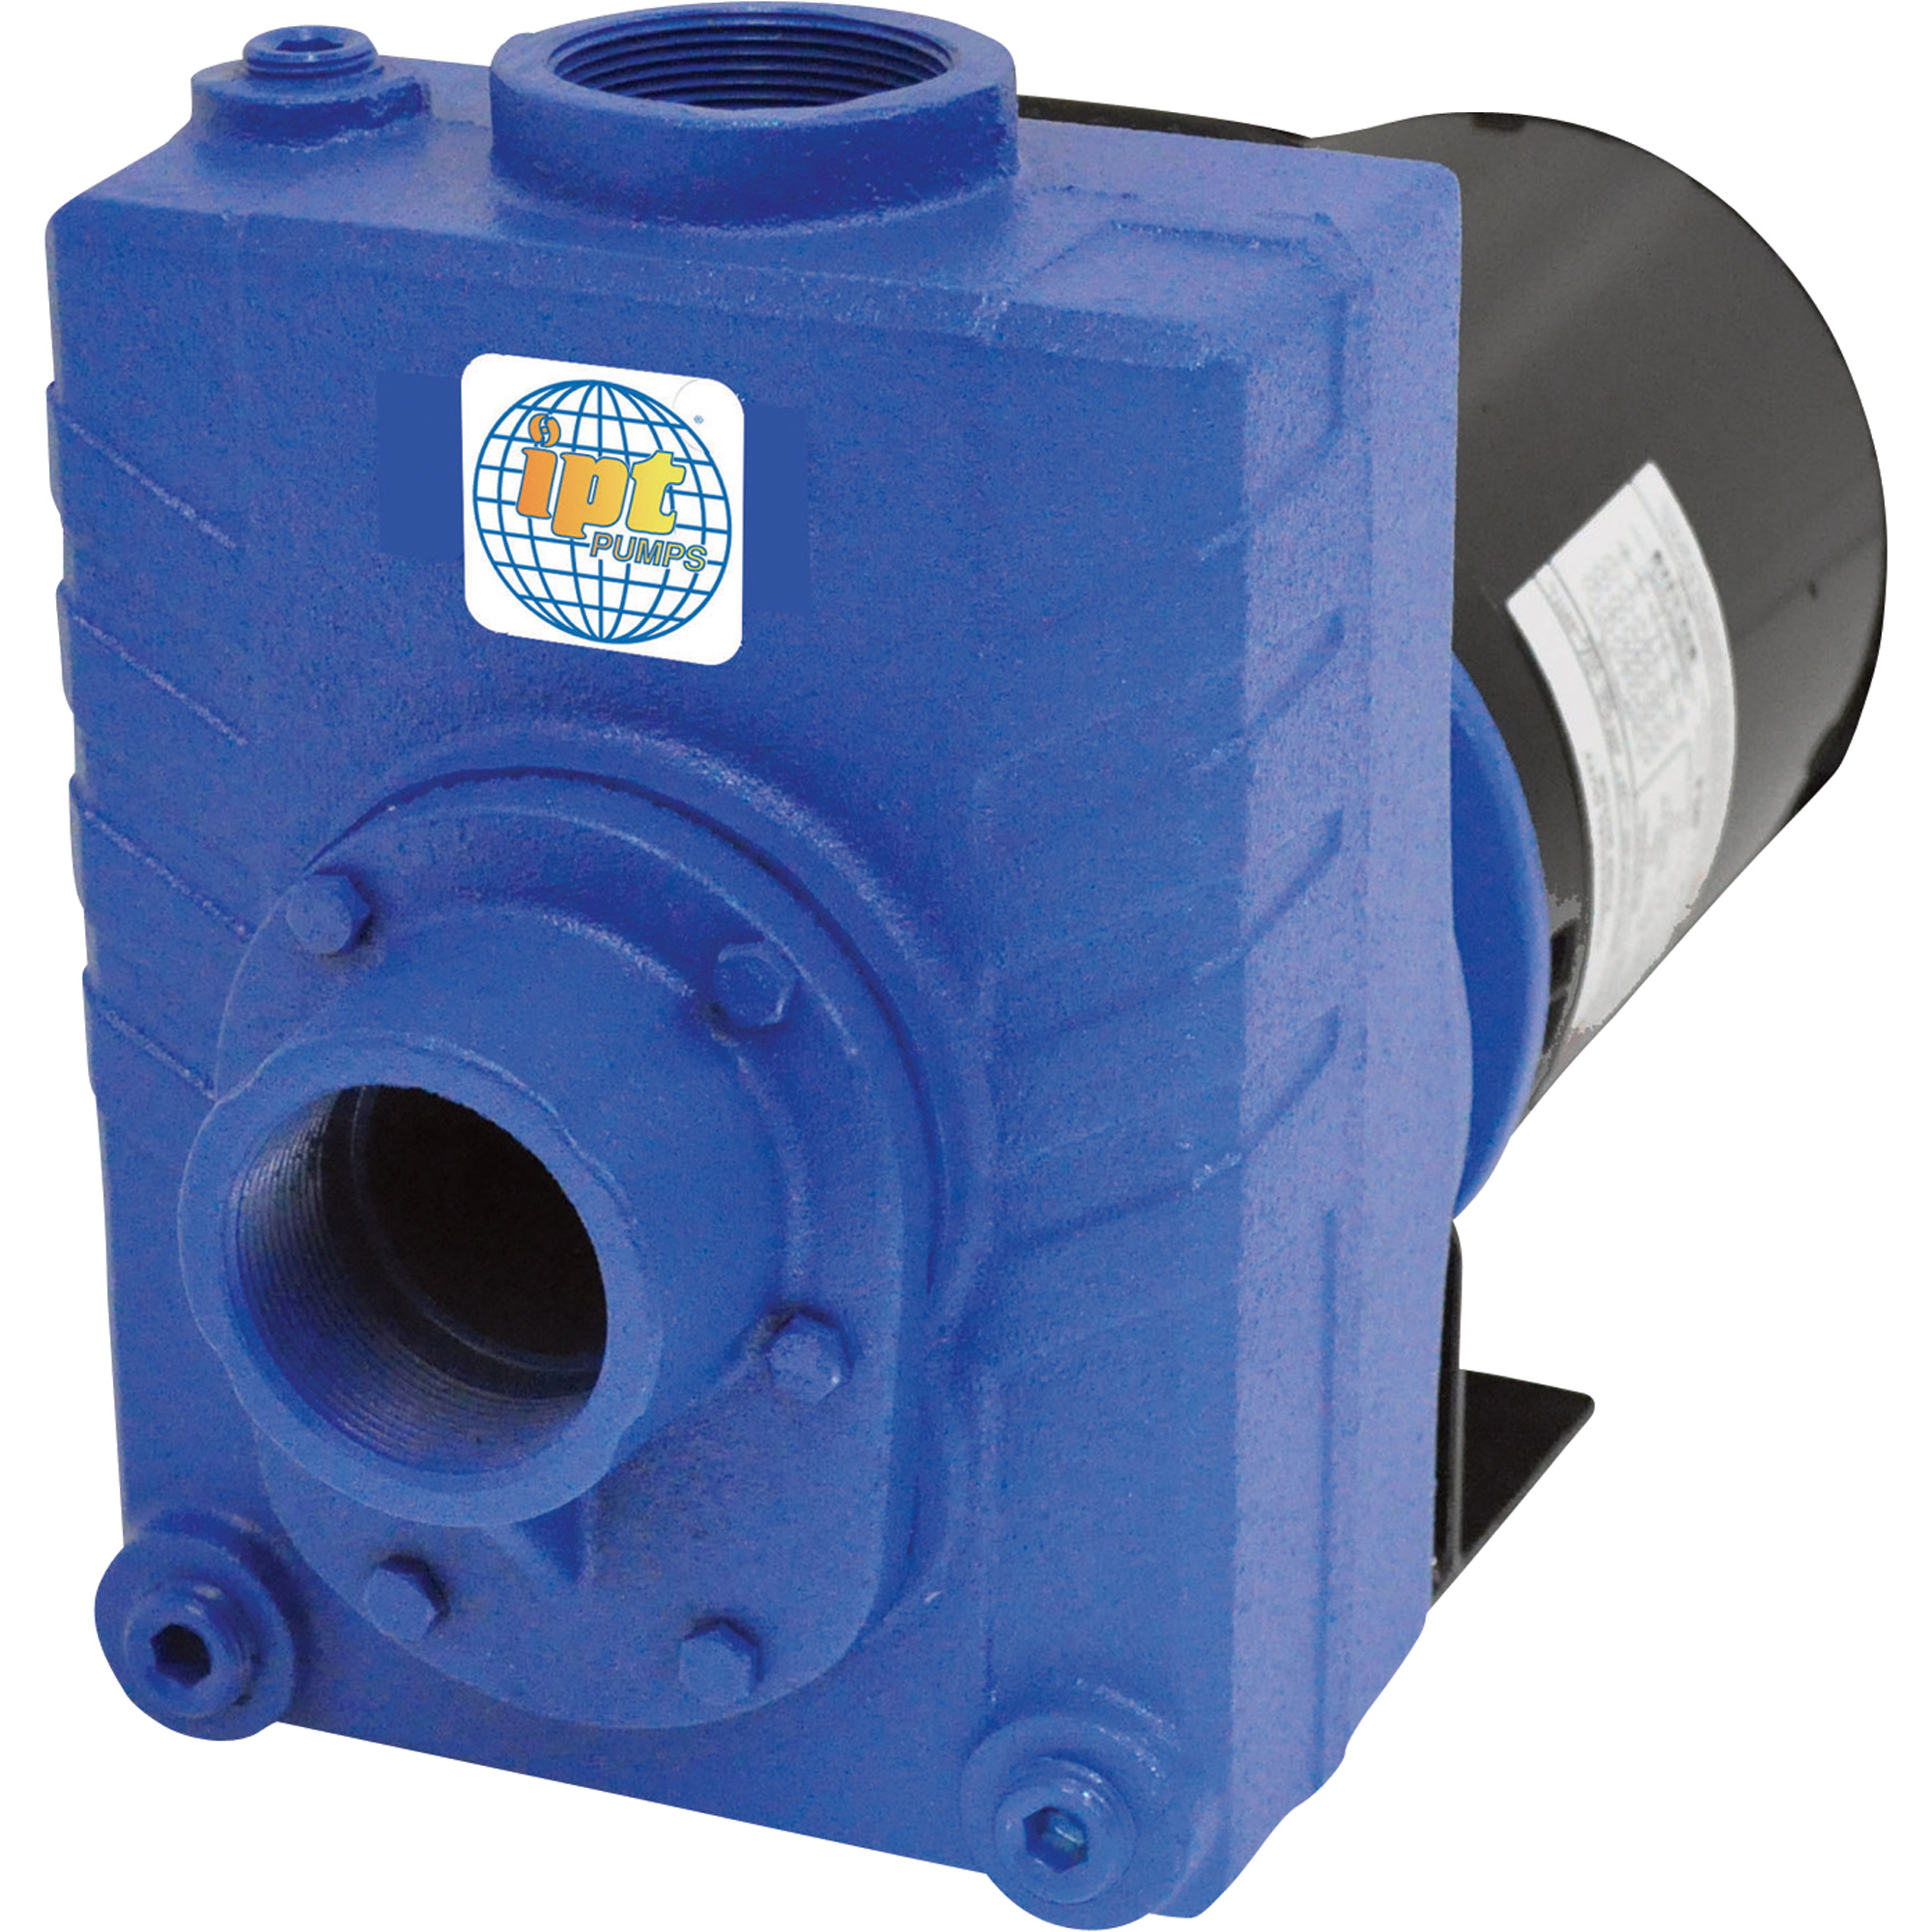 be67bae4ef3 IPT Cast Iron Self-Priming Centrifugal Water Pump — 125 GPM